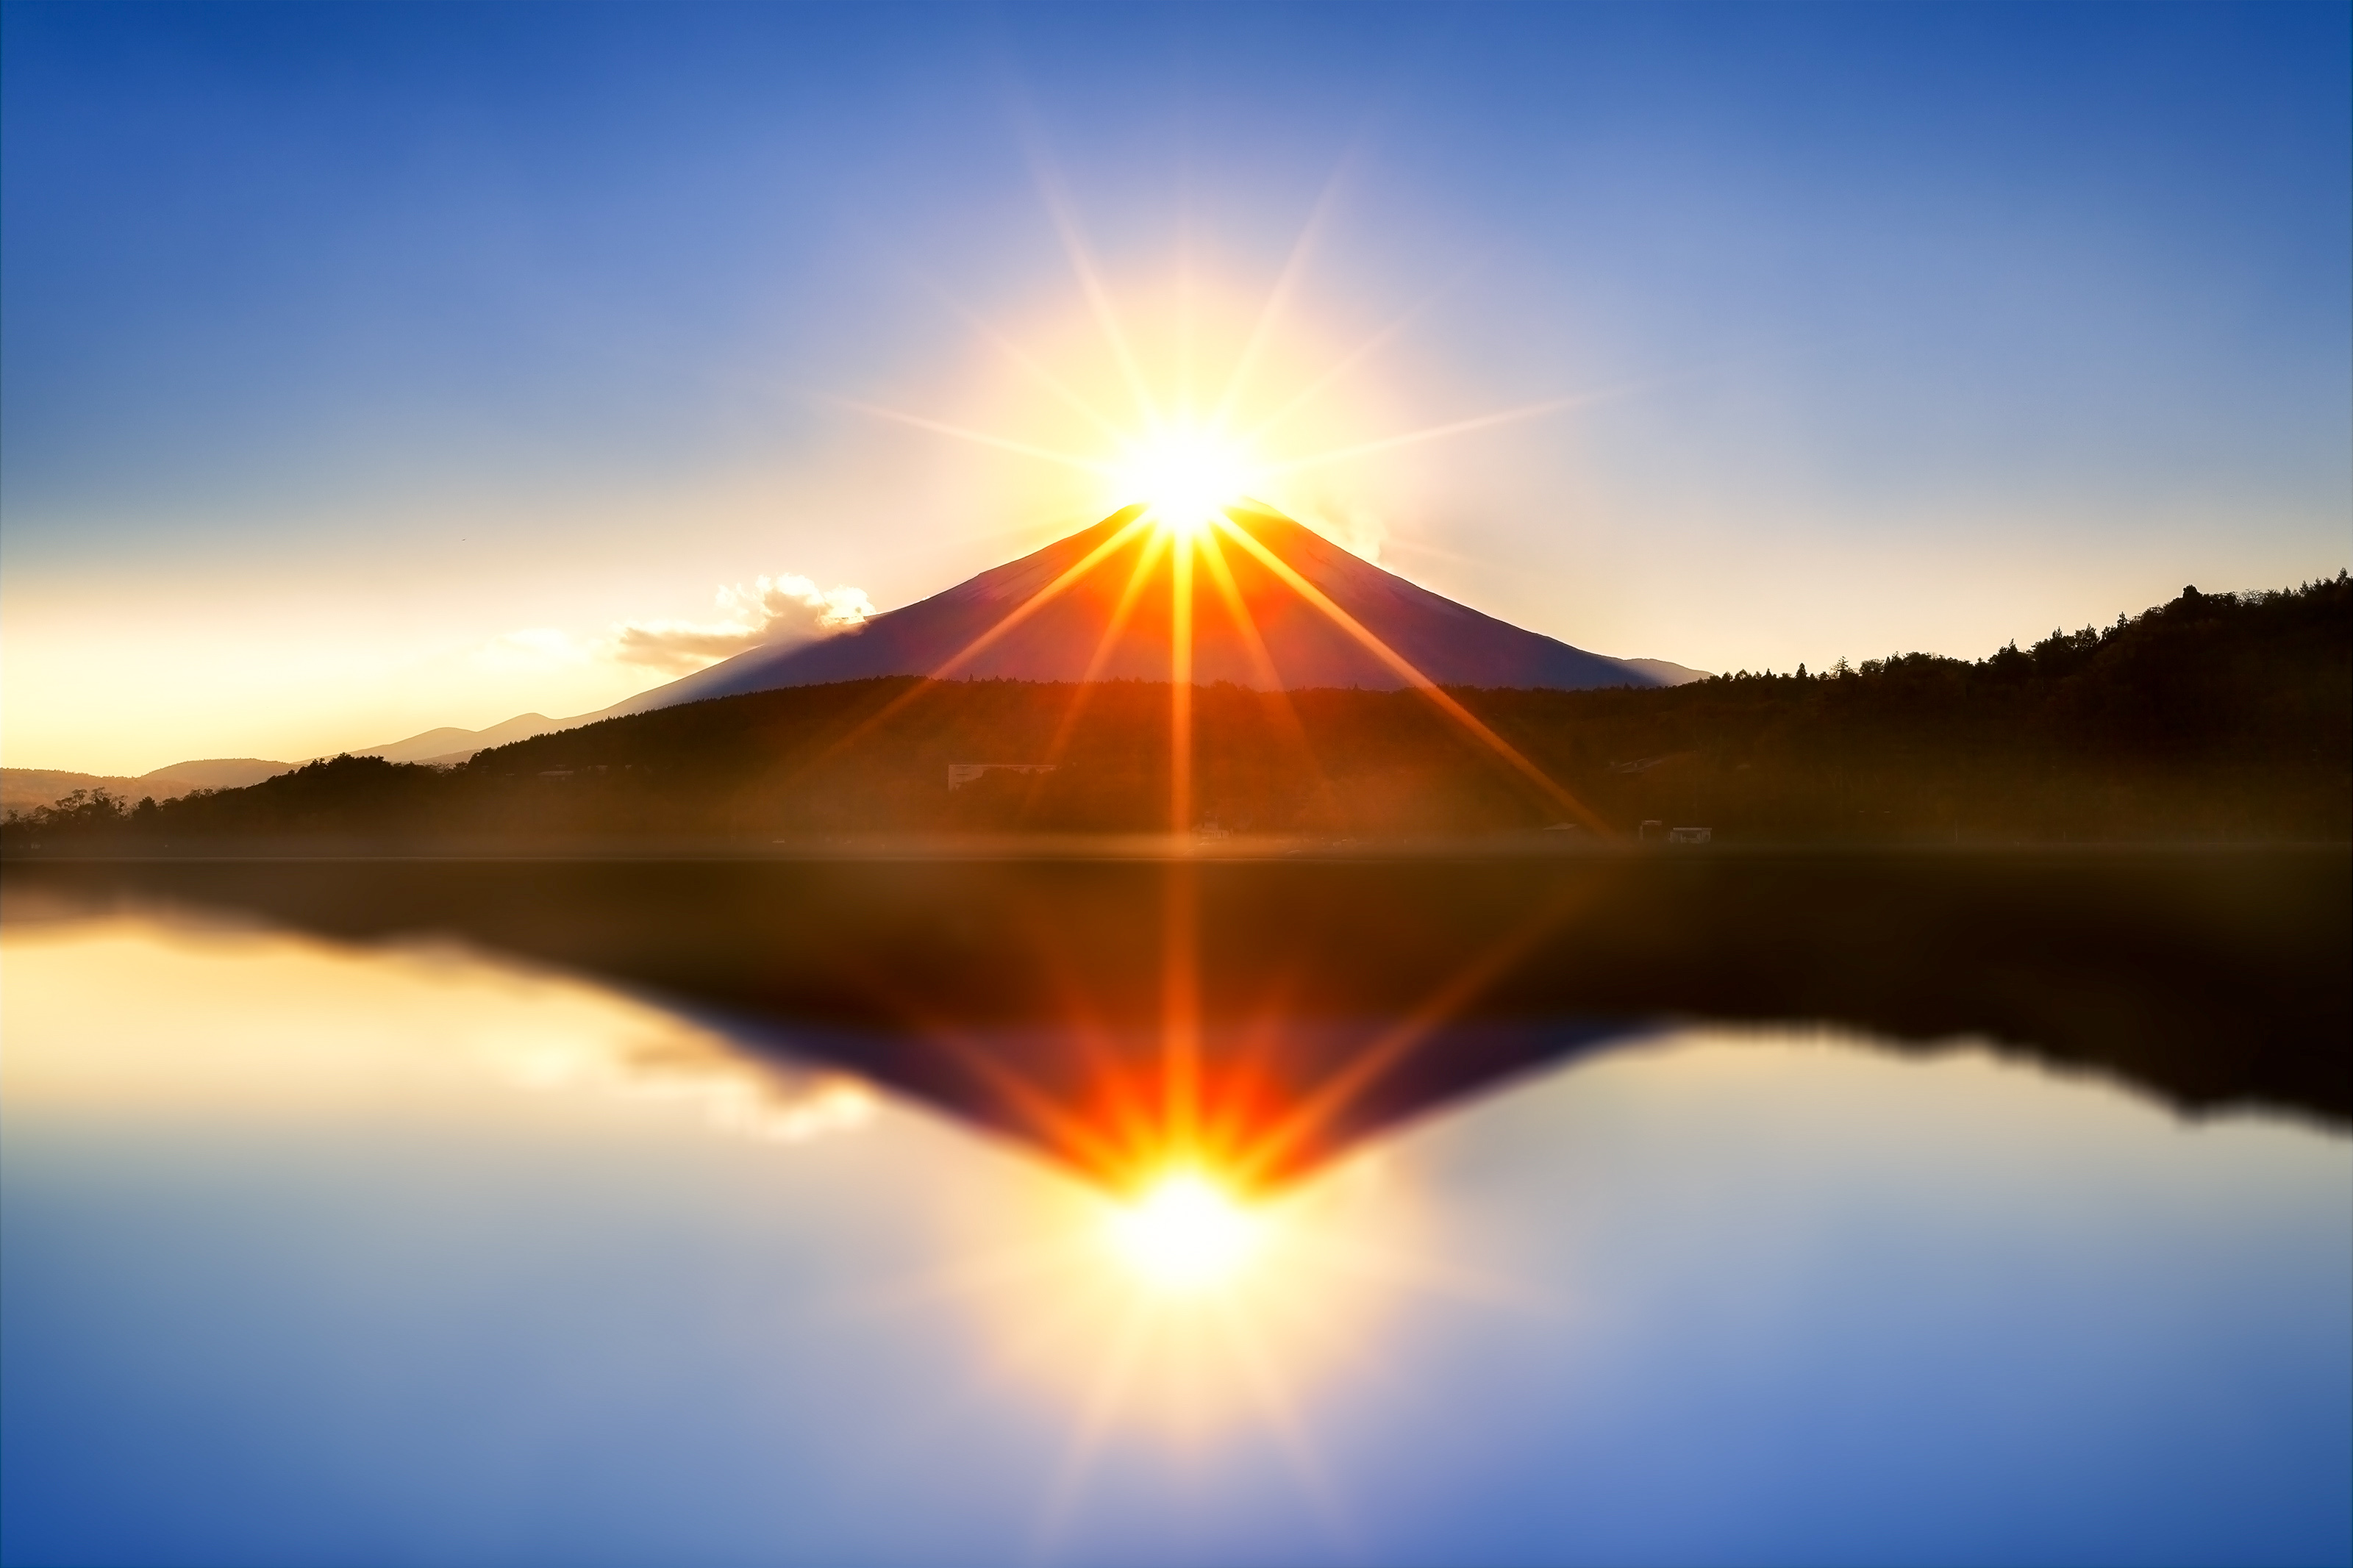 Sunrise in japan photo